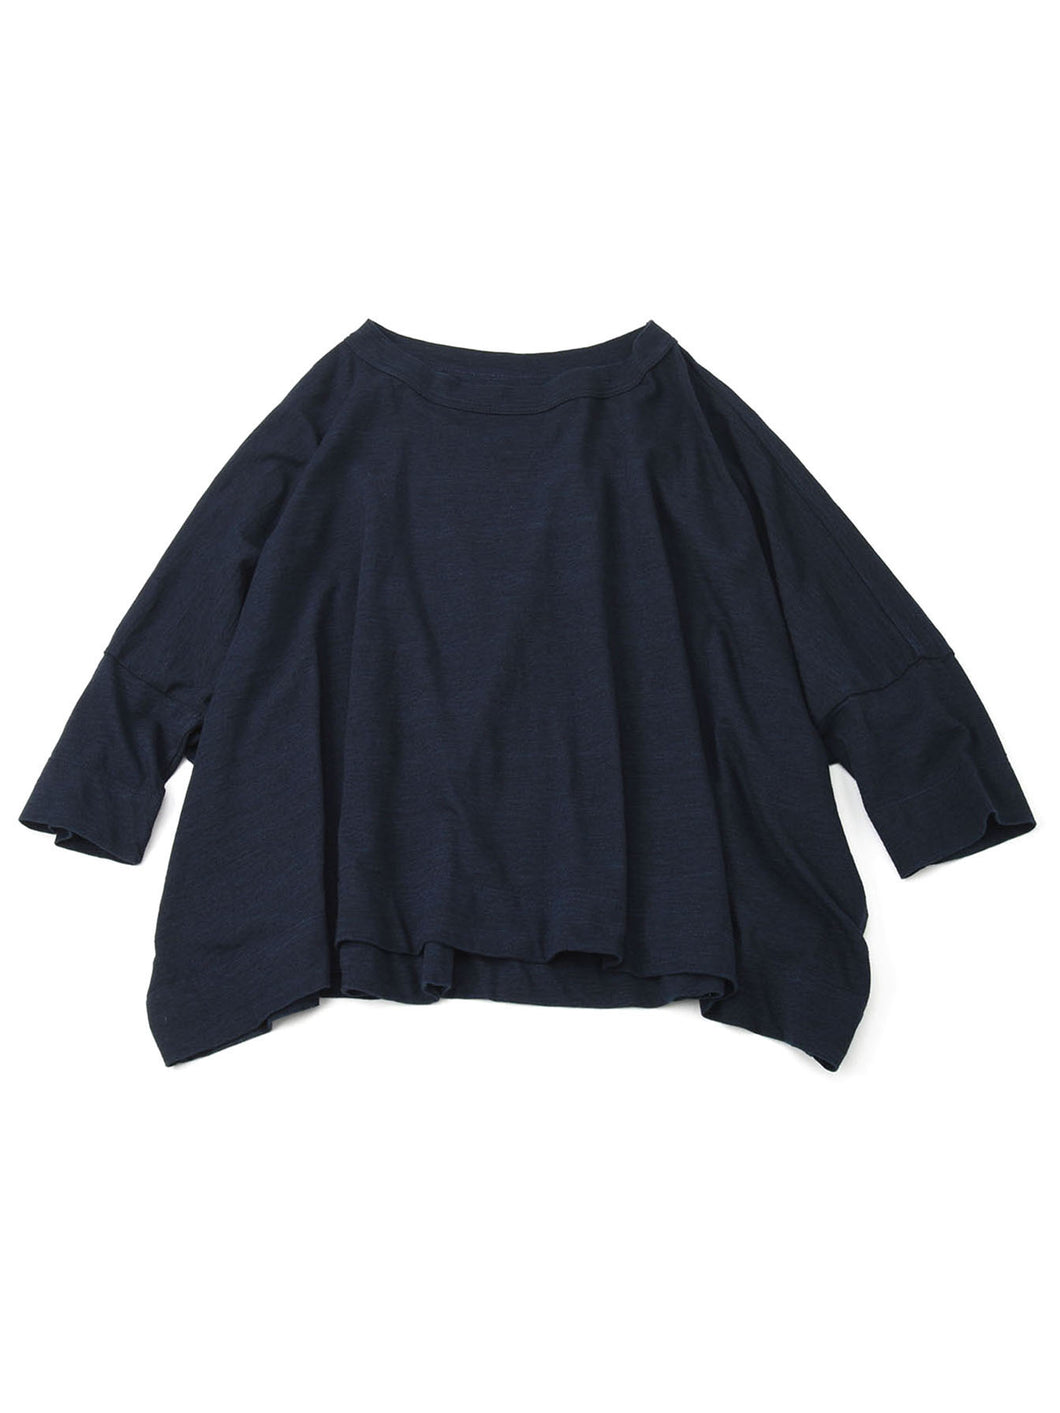 Zimba Cotton Big T-shirt in indigo